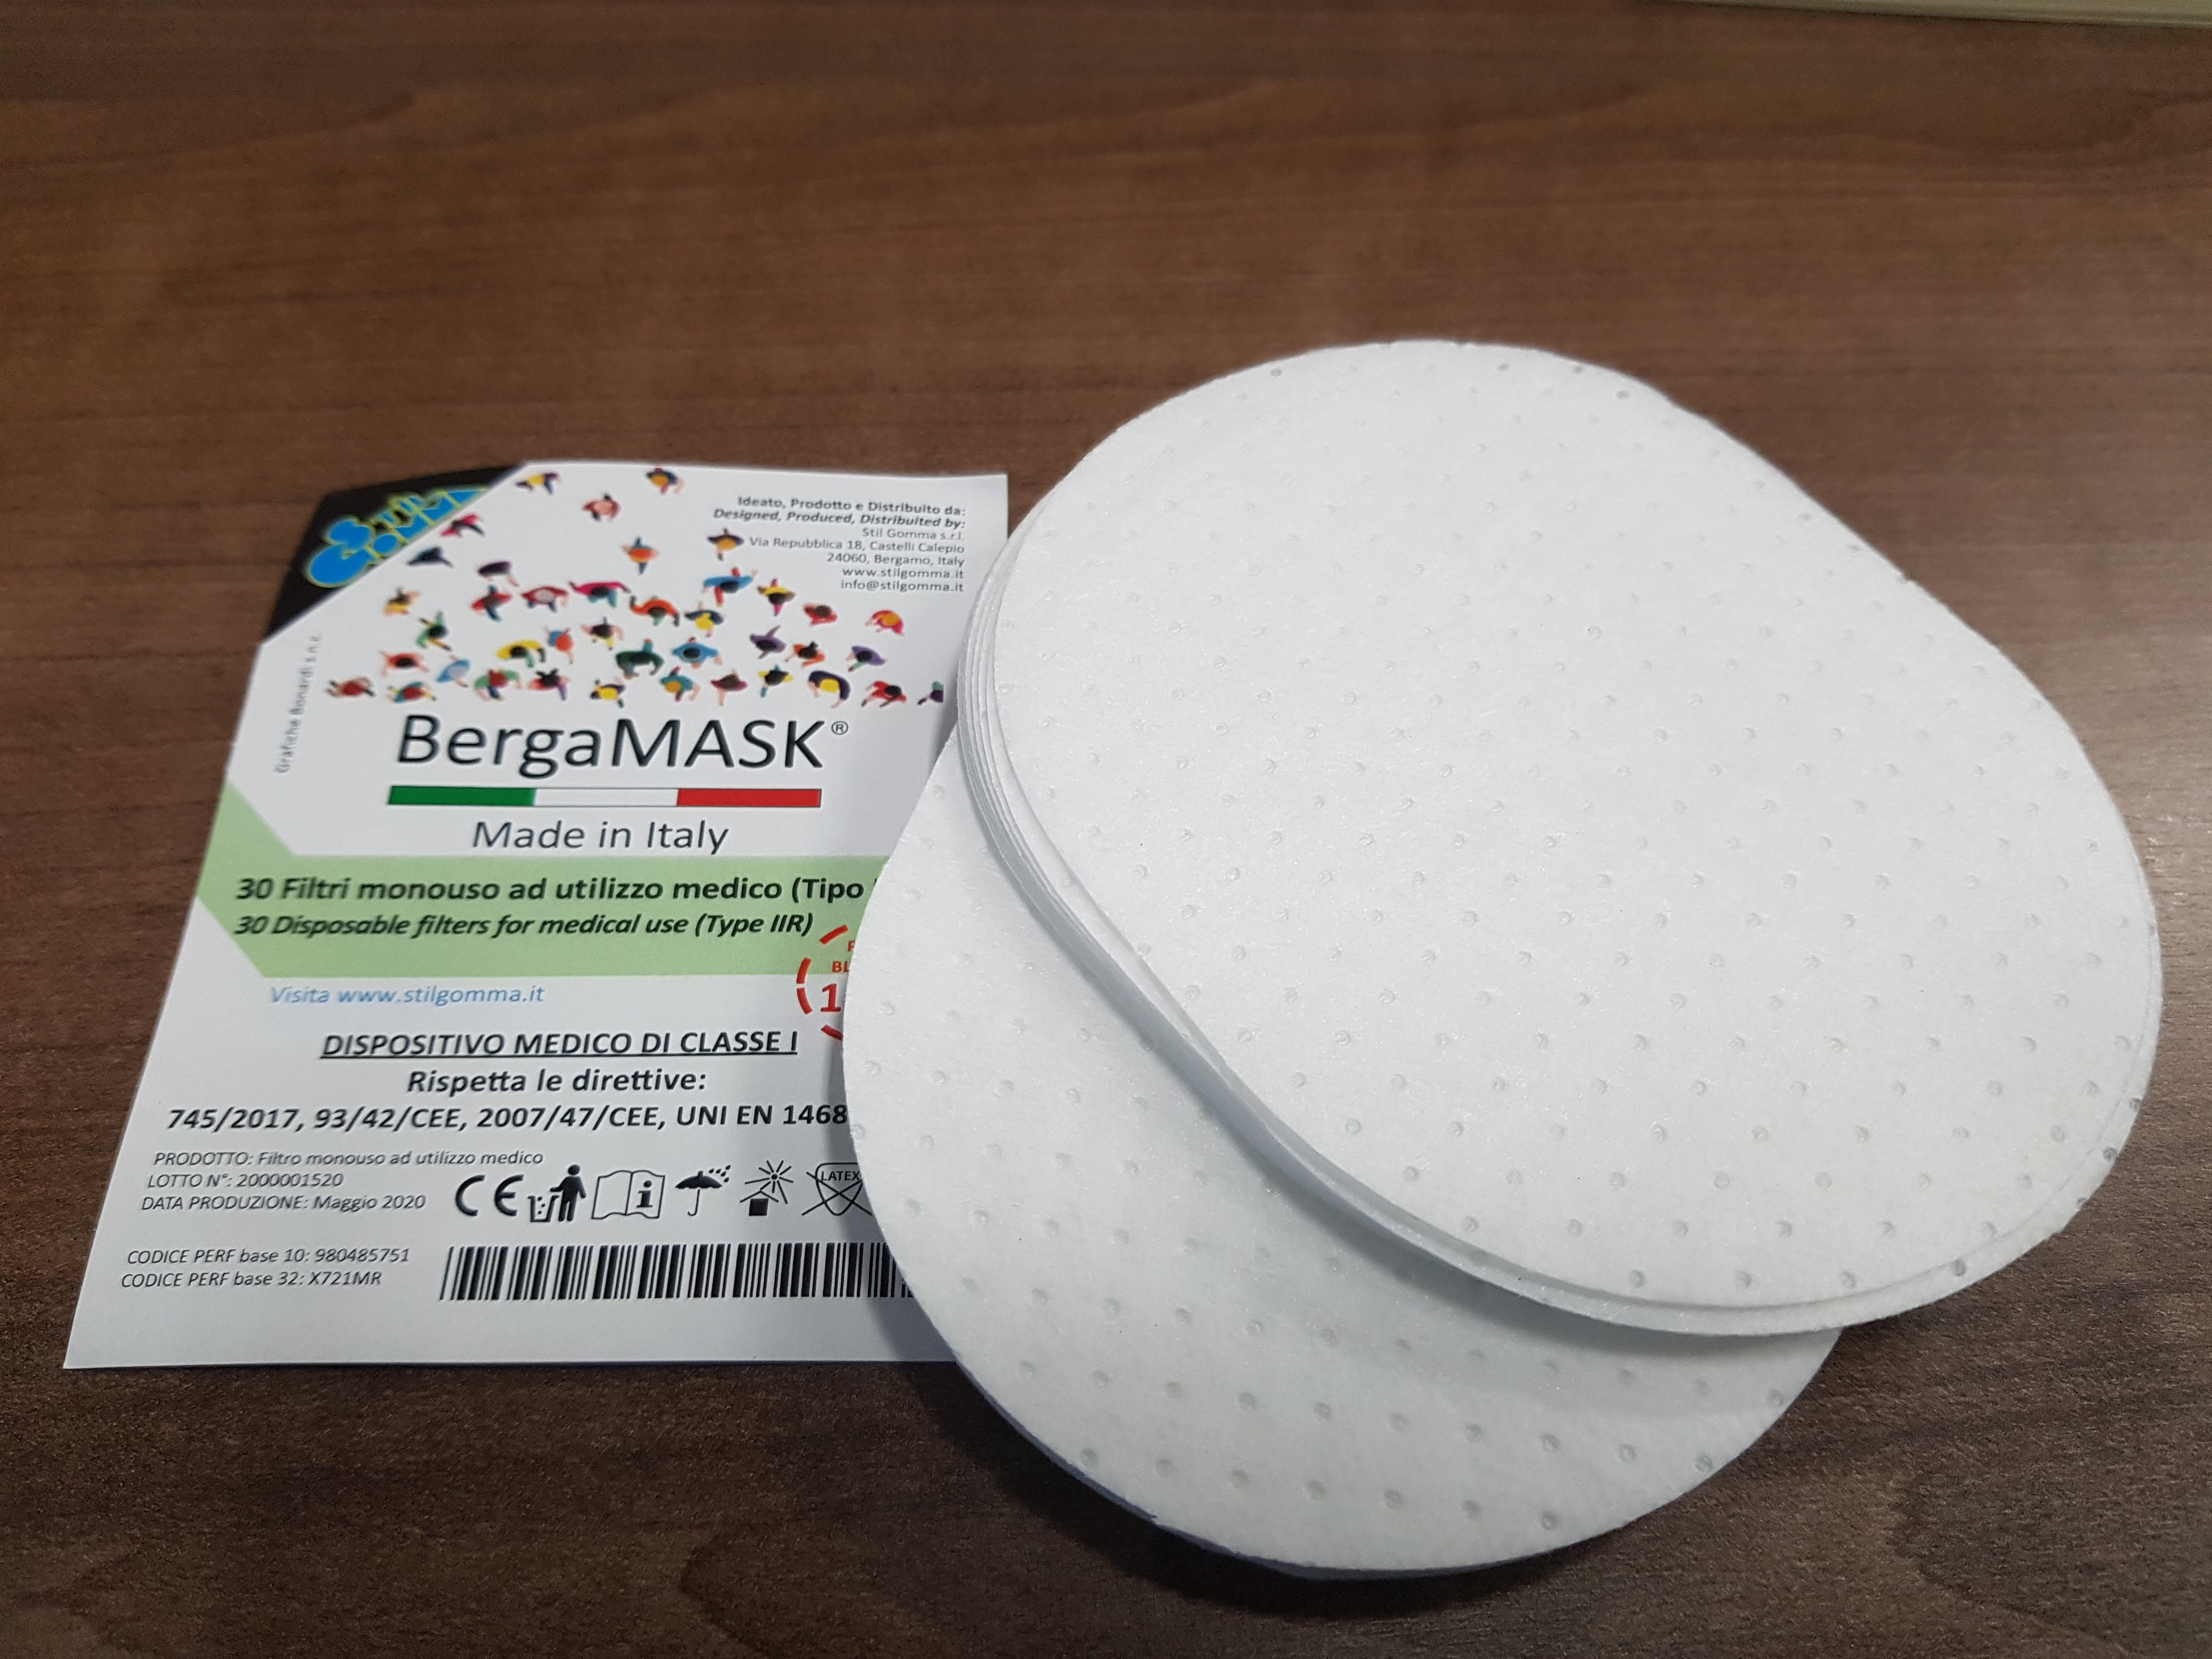 BergaMASK ® ADULT SIZE WITH GENERIC AND IIR TYPE FILTER